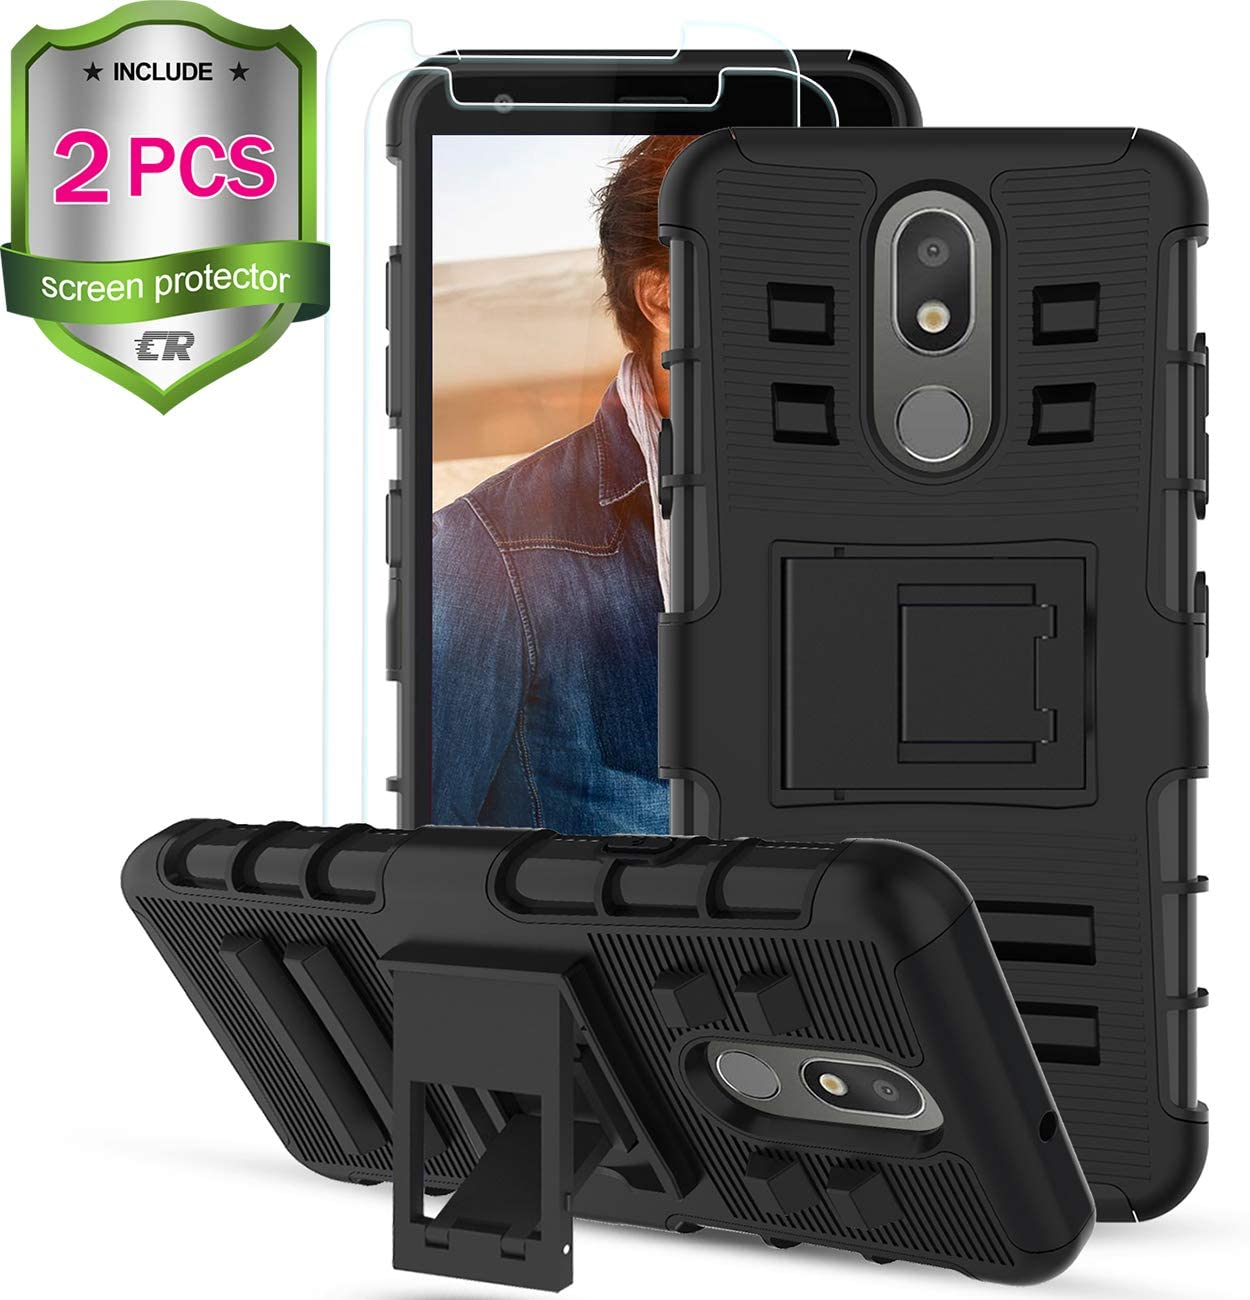 CaseRoo LG Aristo 4 Plus Case,LG K30 2019 CasewScreen Protector[2 Pack],LG Tribute Royal/Journey LTE/Escape Plus/Arena 2/Prime 2 Phone Case,Built-in Kickstand Shockproof Bumper Phone Cover-Black